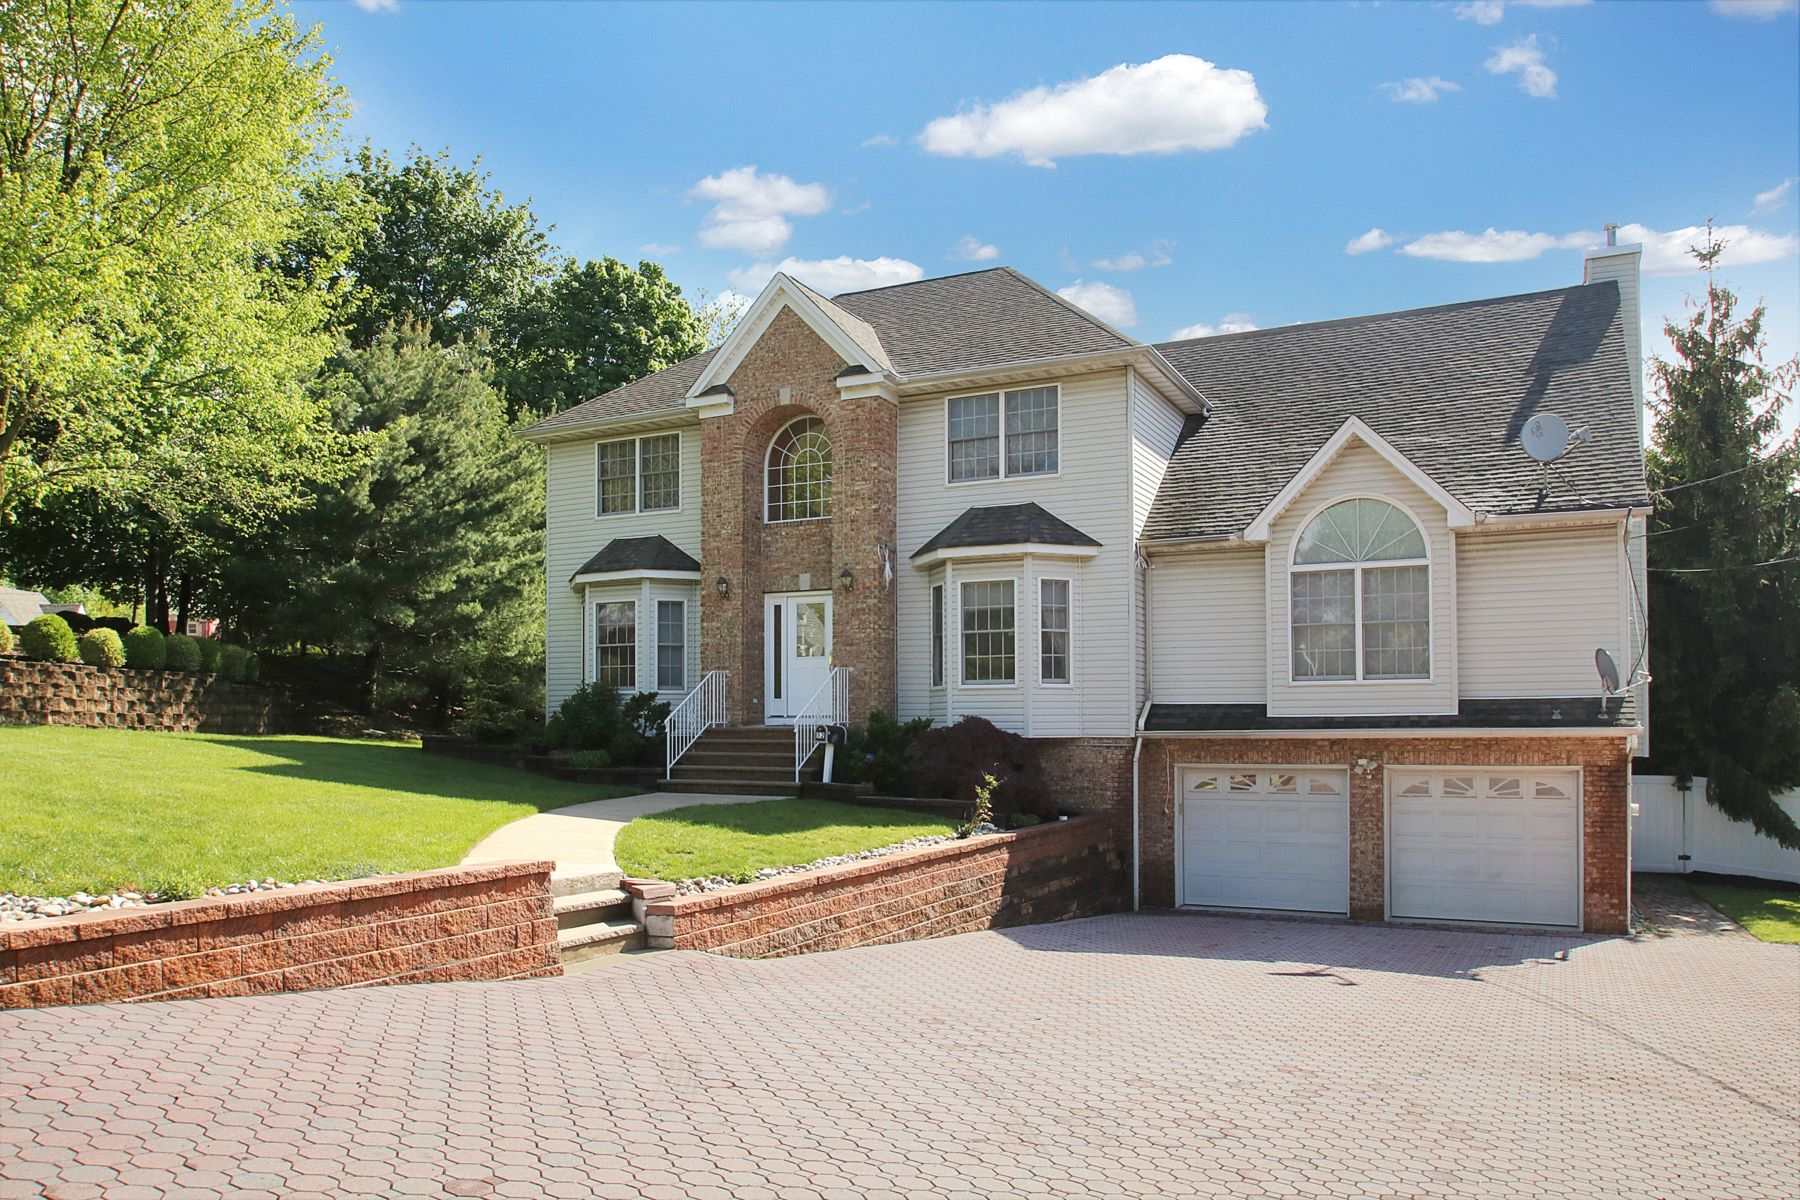 Single Family Home for Sale at You Will Love This Colonial 52 Jacobus Avenue Wayne, New Jersey 07470 United States